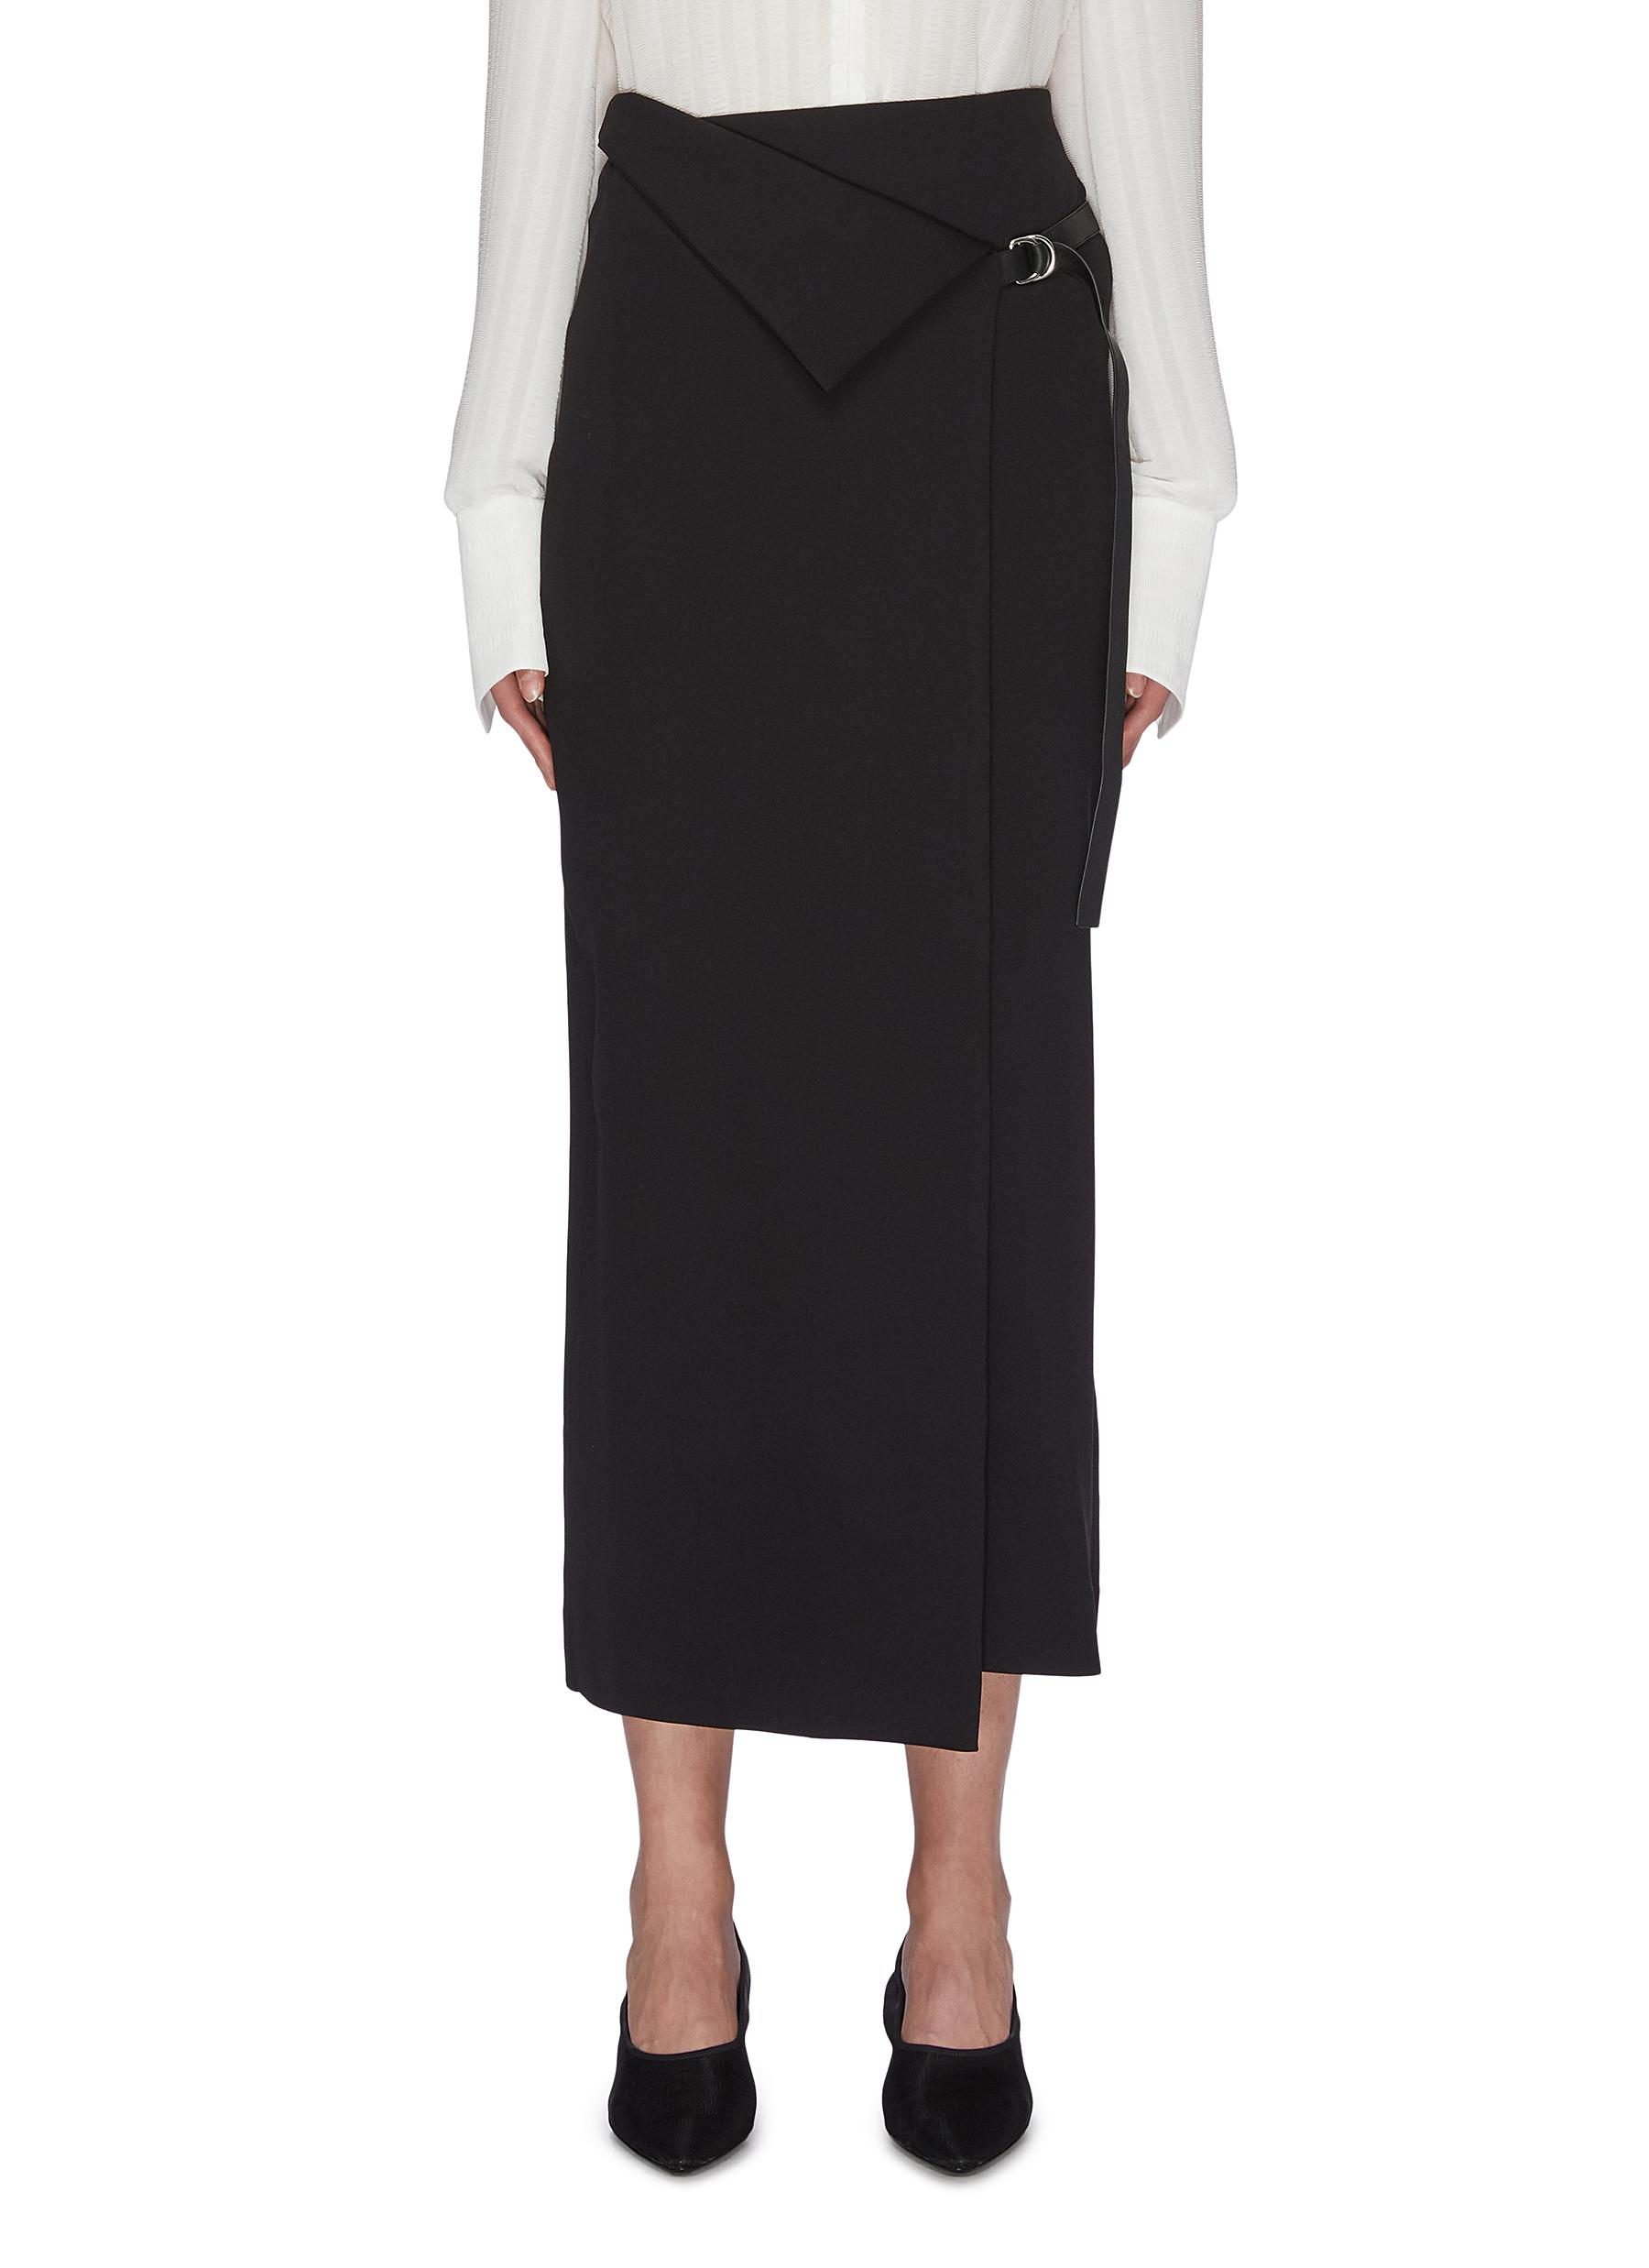 Buy The Row Skirts 'Ogechi' foldover D-ring wrap midi skirt